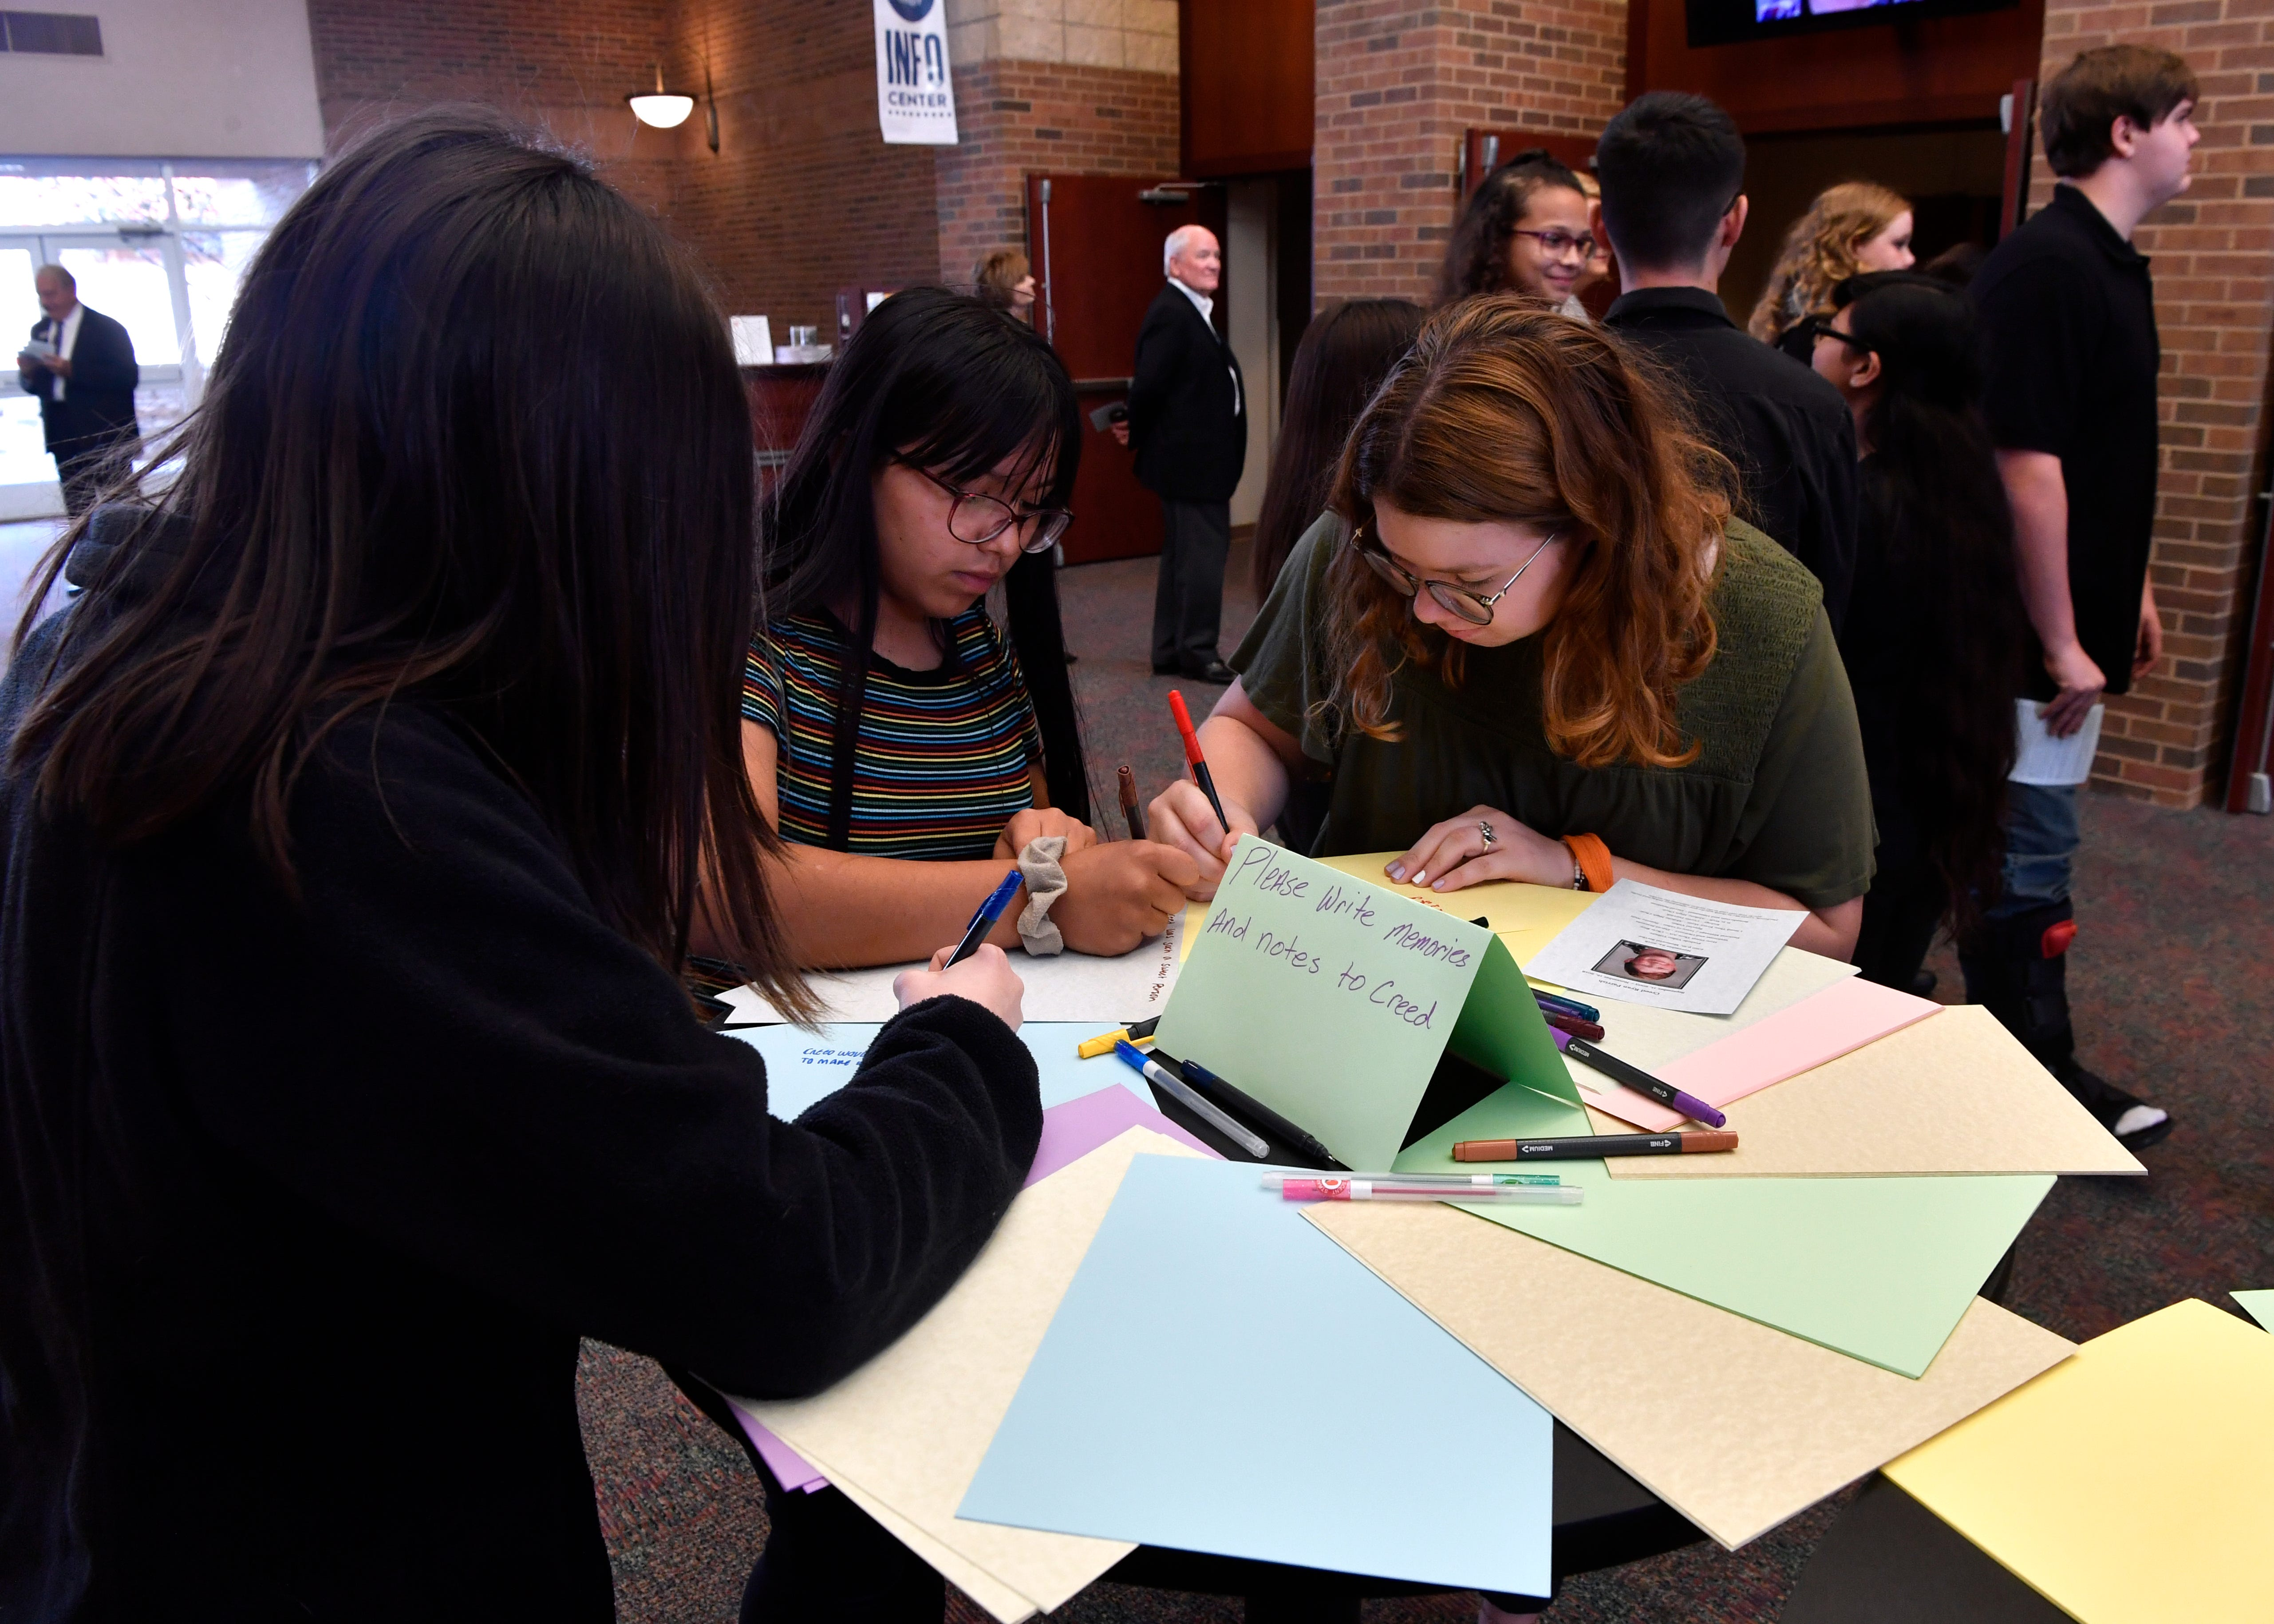 Avery Kerr, (left), Yasmine Hernandez and Emma Skaggs write notes of condolence before the memorial service of Creed Ryan Parrish Saturday Nov. 24, 2018 at Highland Church of Christ. Parrish died Nov. 16 during a school trip to Grapevine.